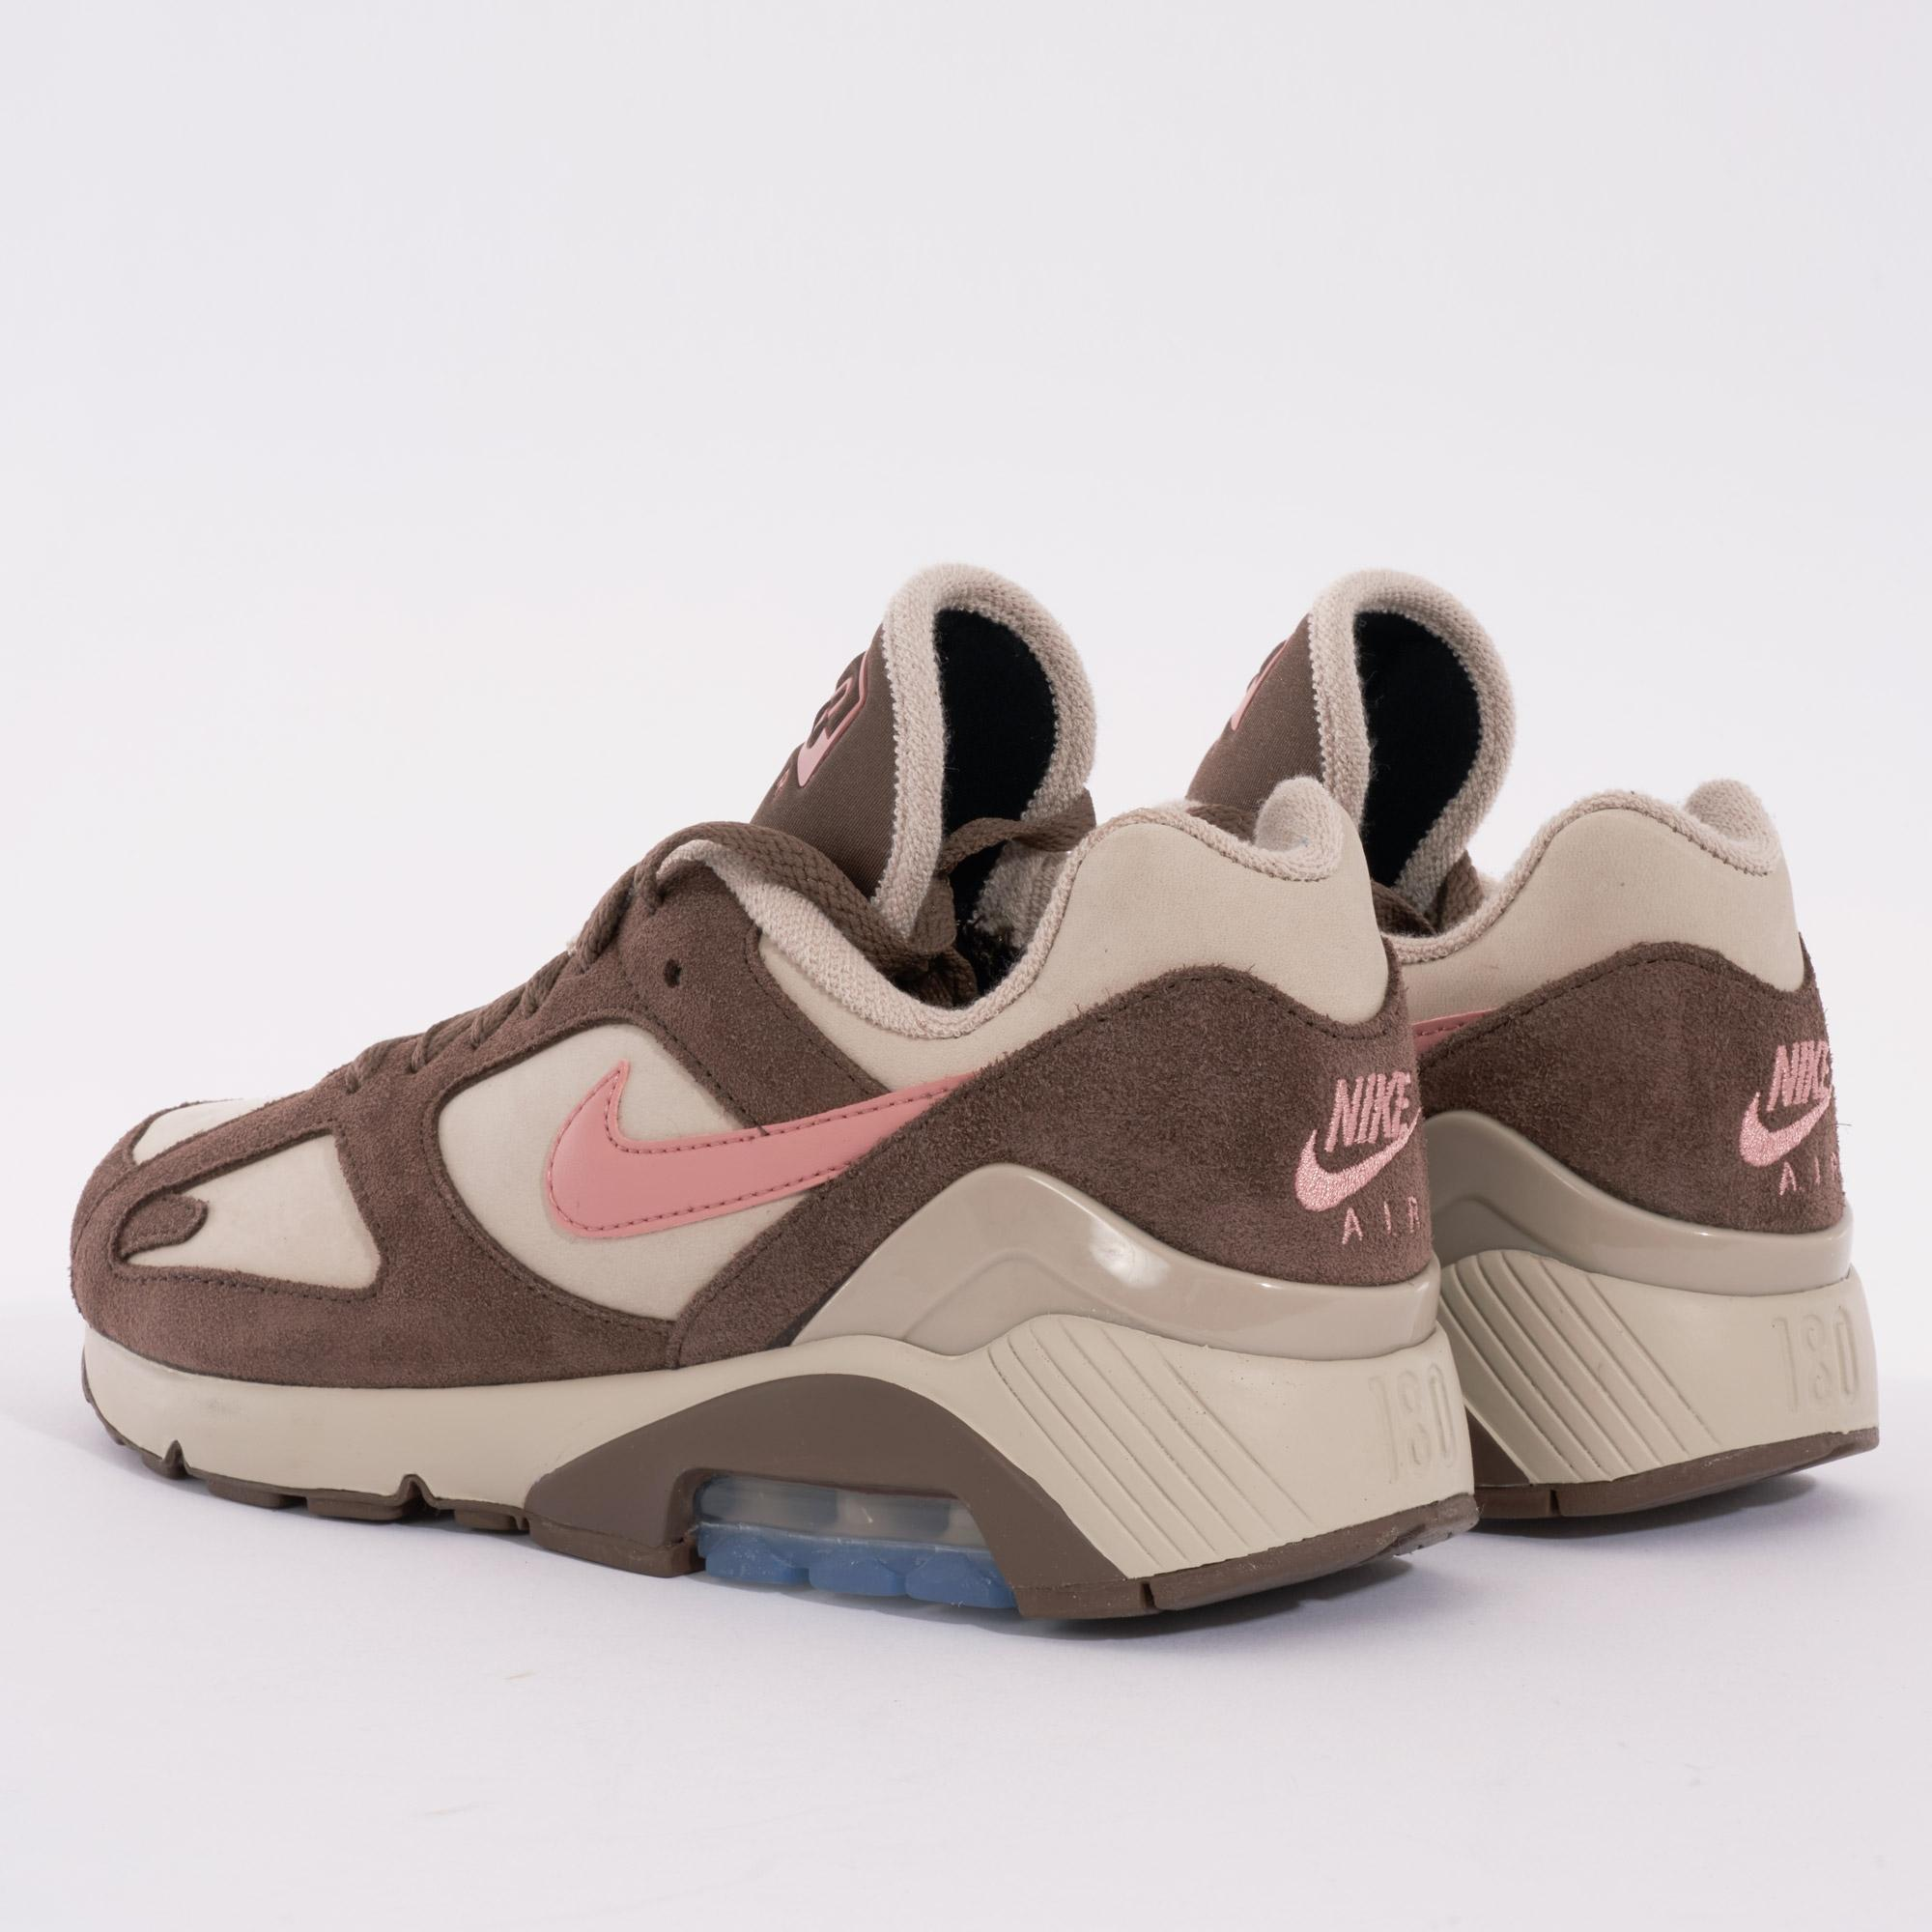 new arrival 6c500 2f82f Nike Air Max 180 - String   Pink in Pink for Men - Lyst